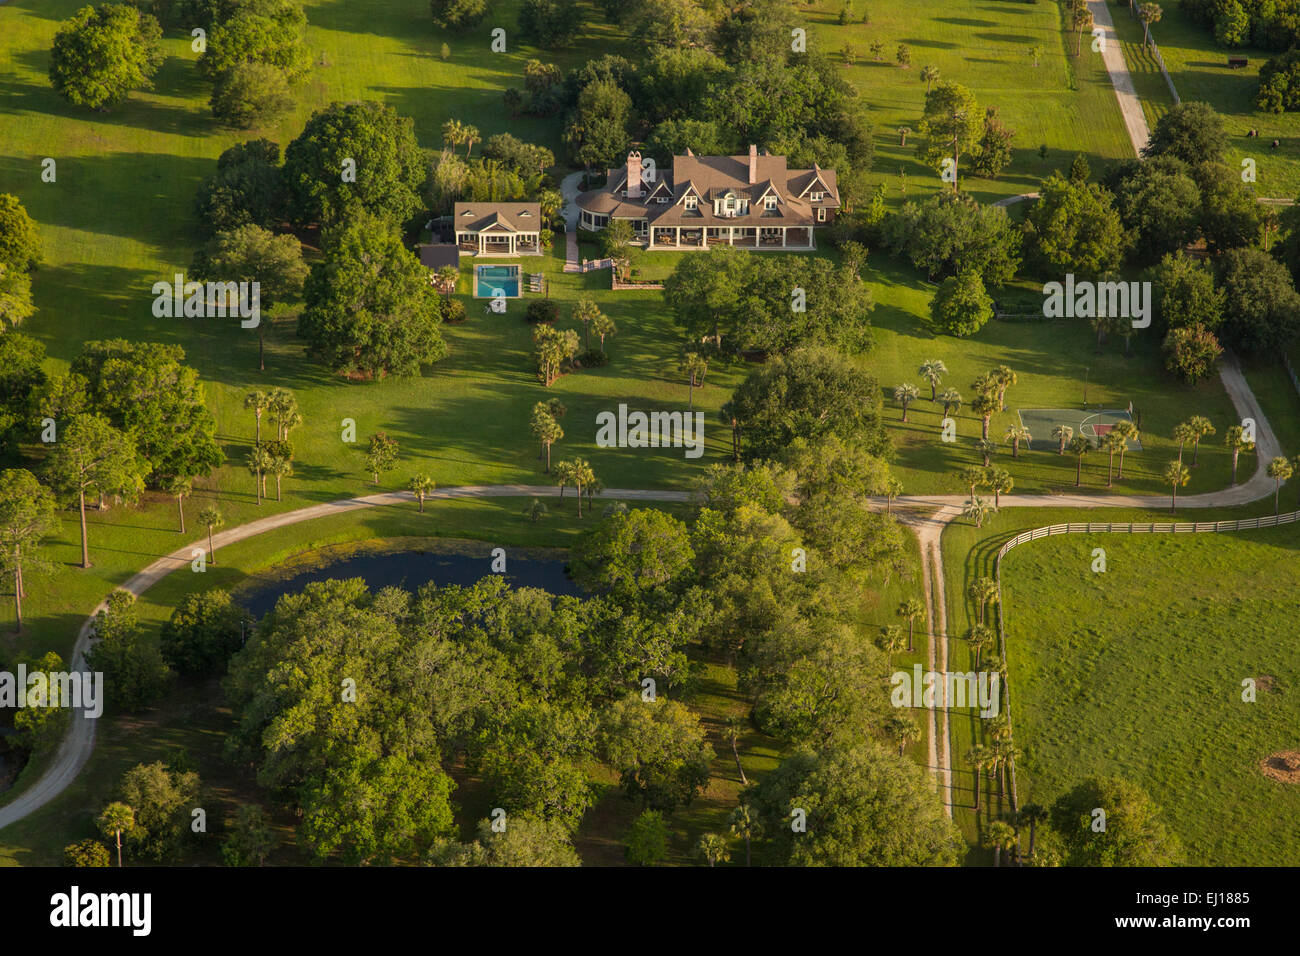 Aerial view of the Darby family estate along the marsh in Mt Pleasant, SC - Stock Image